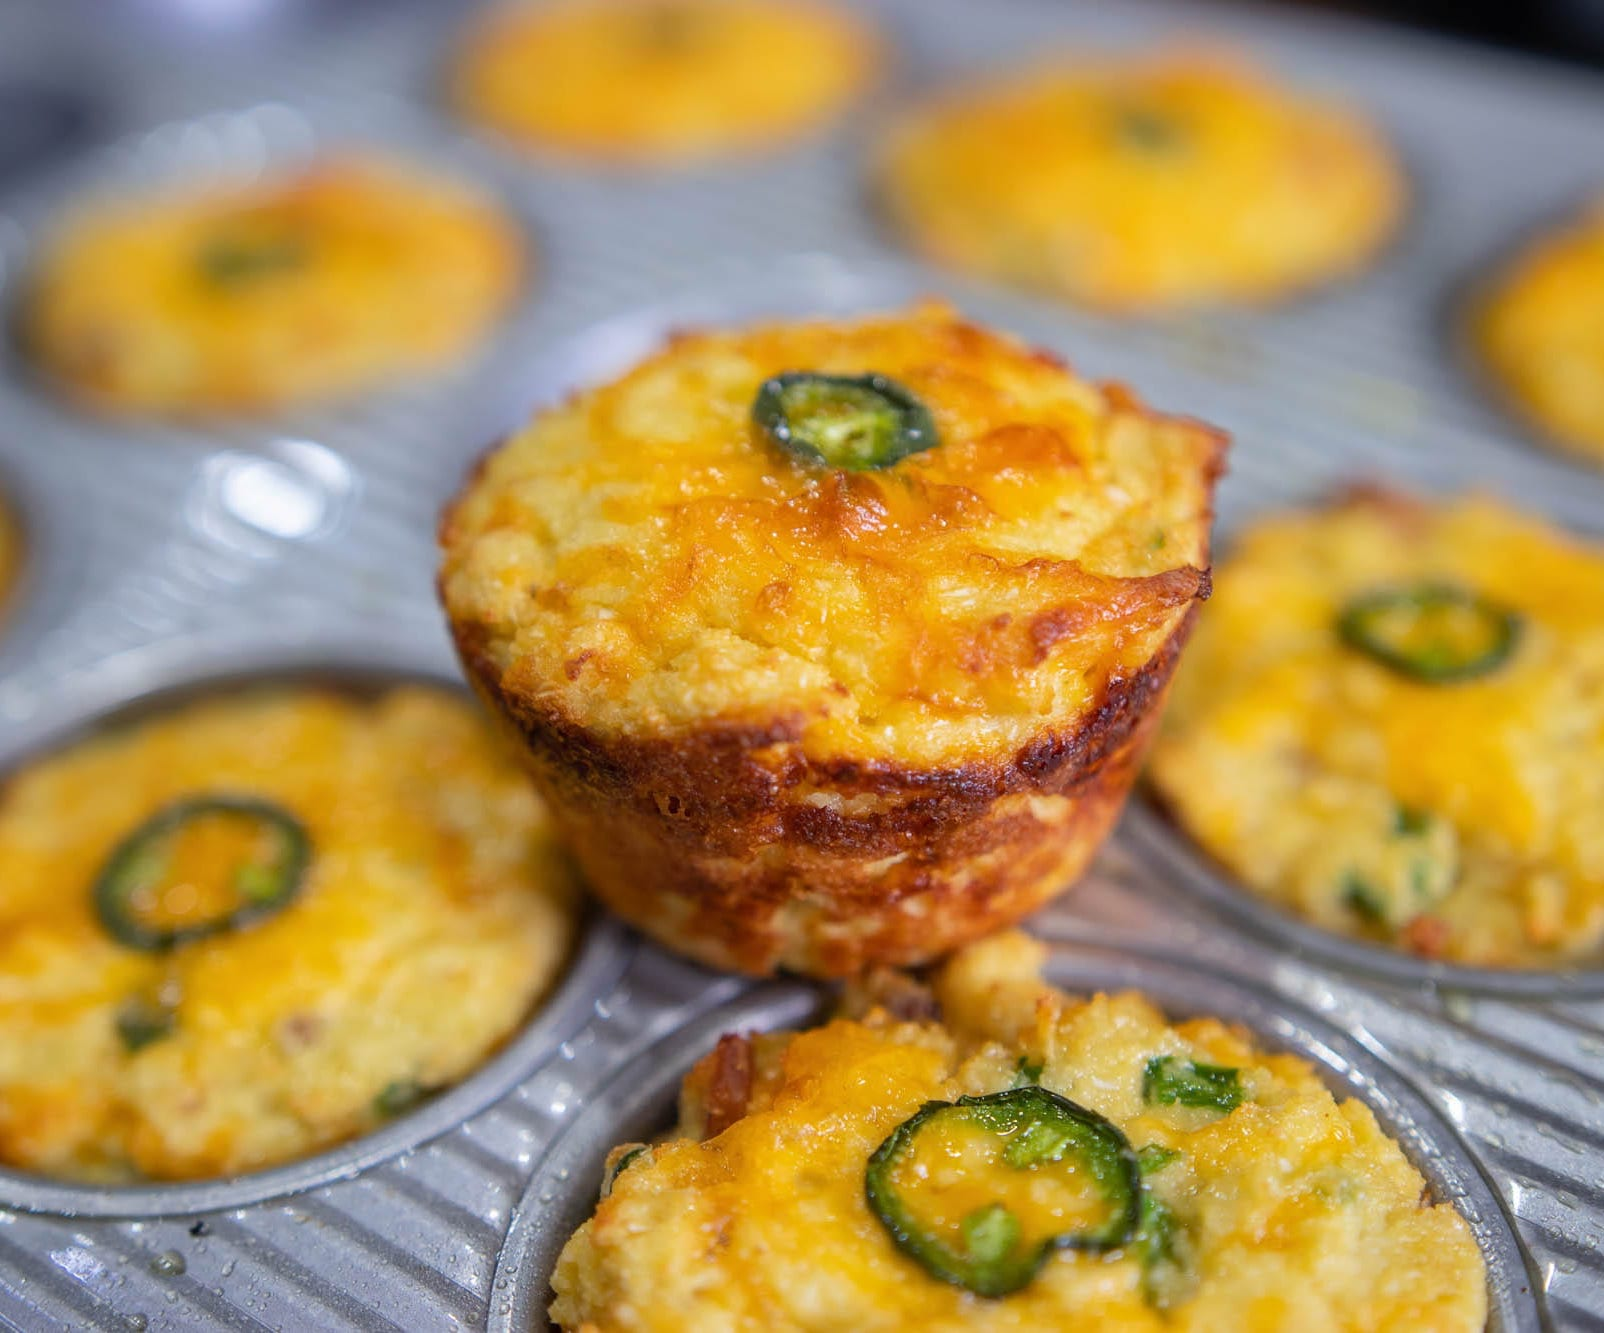 Muffins with bacon and cheddar cheese